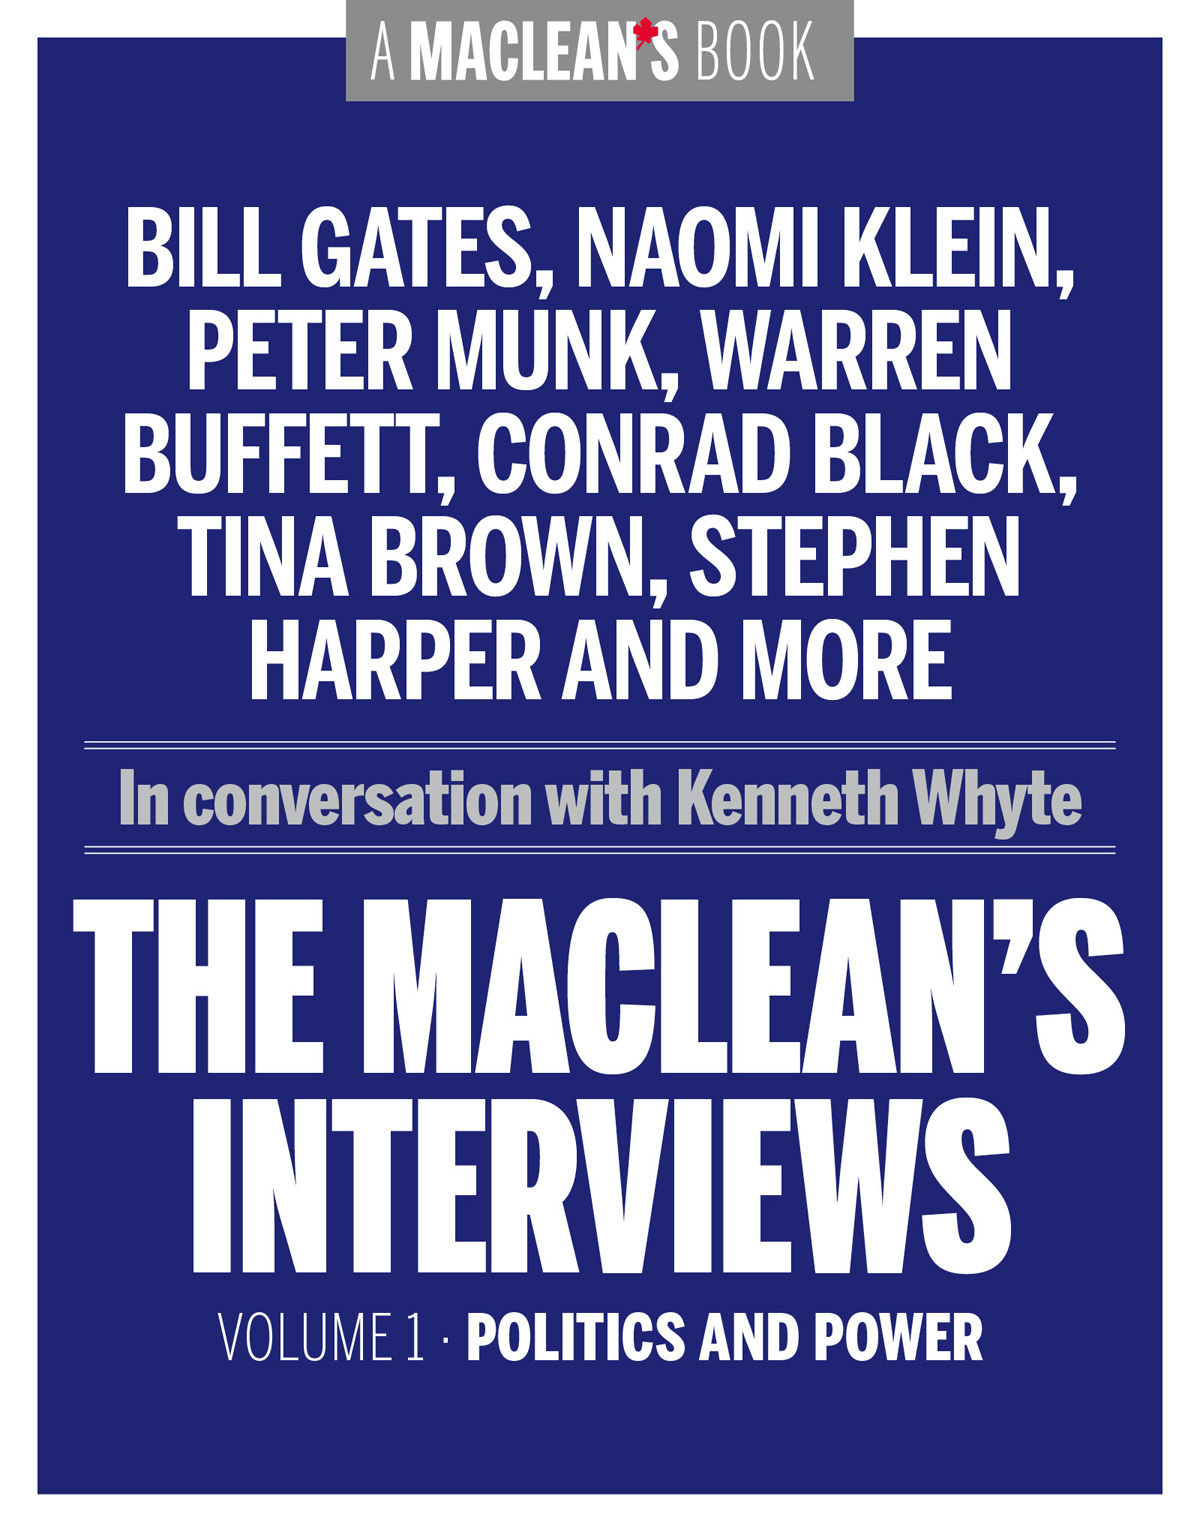 The Macleans Interviews, Volume 1: Politics and Power